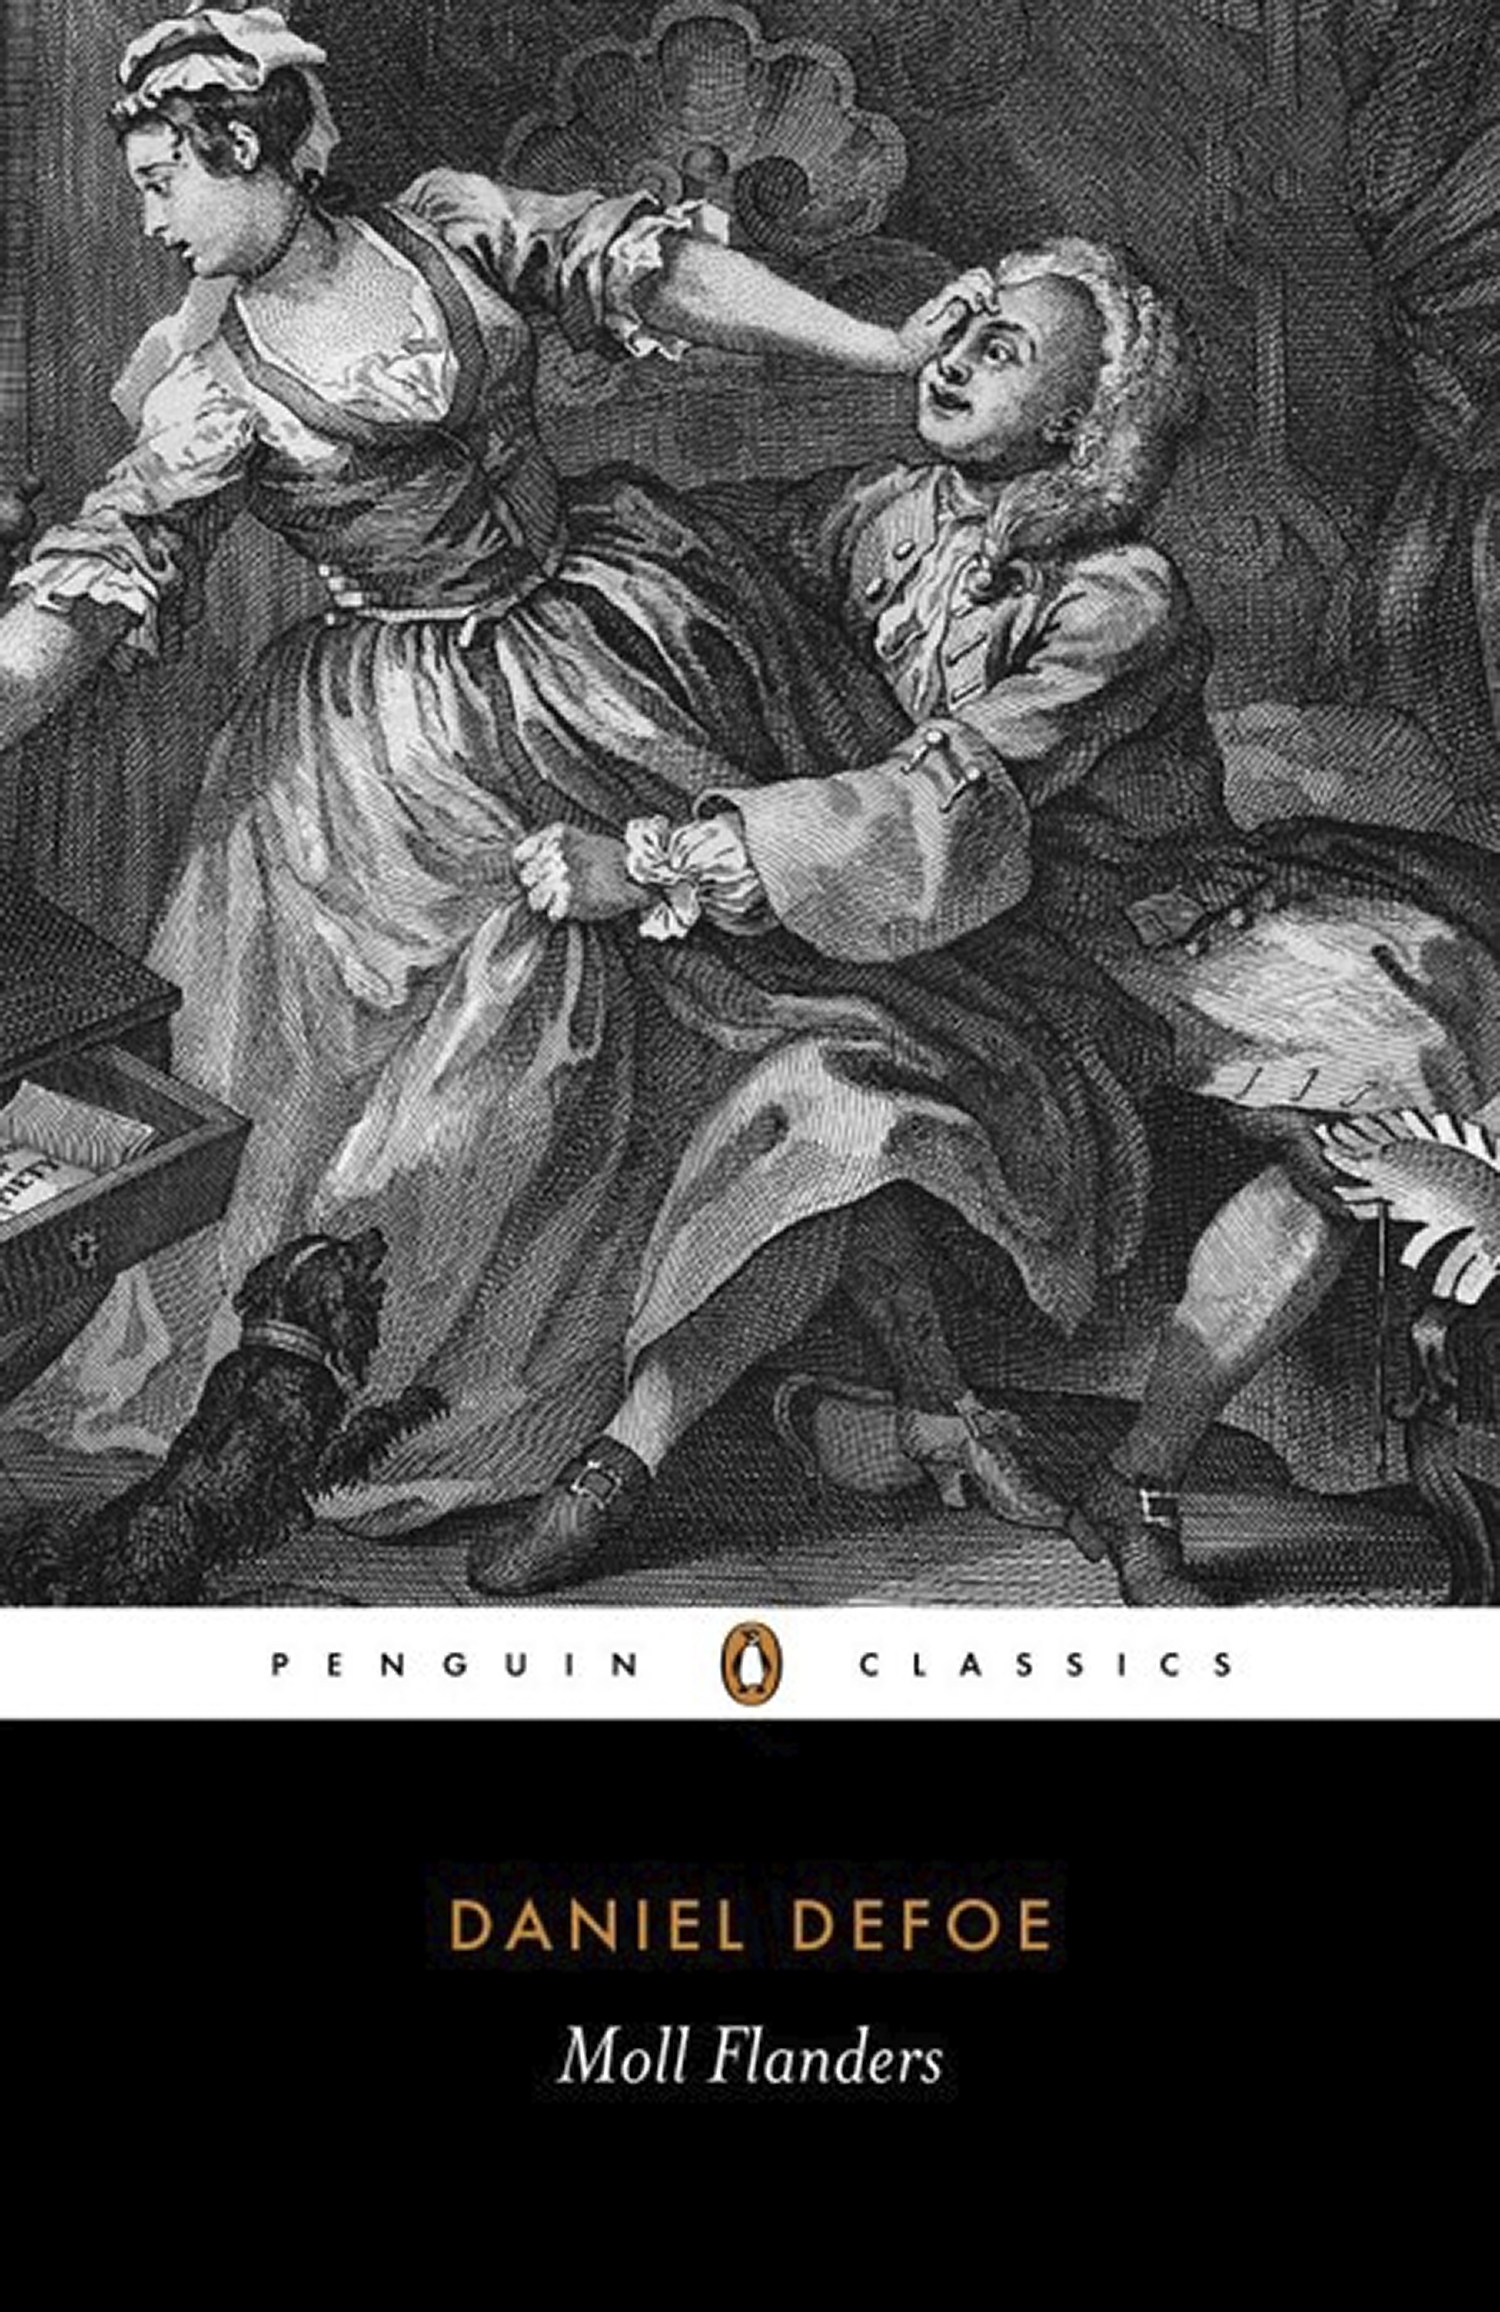 a review of defoes novel moll flanders Defoe, daniel from enlightenment revolution  in the review,  moll flanders and colonel jack were both published in 1722 and,.